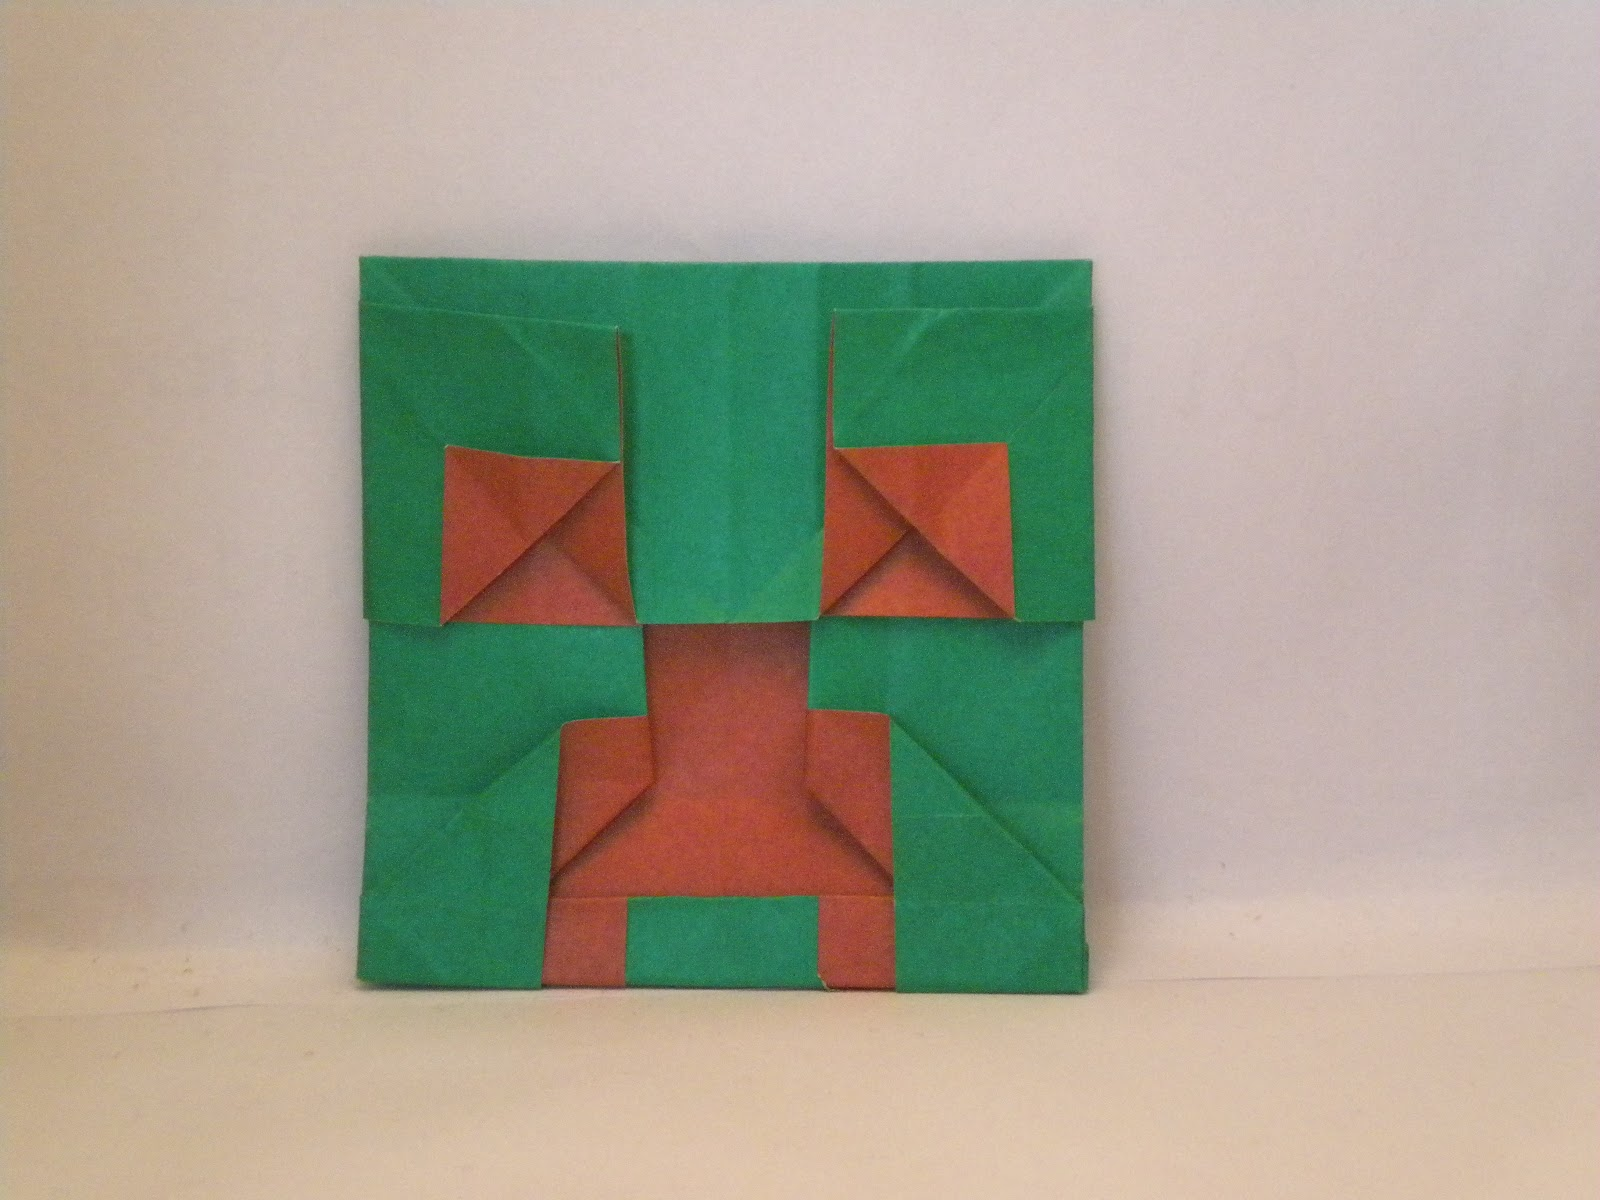 pin minecraft origami creeper image search results on